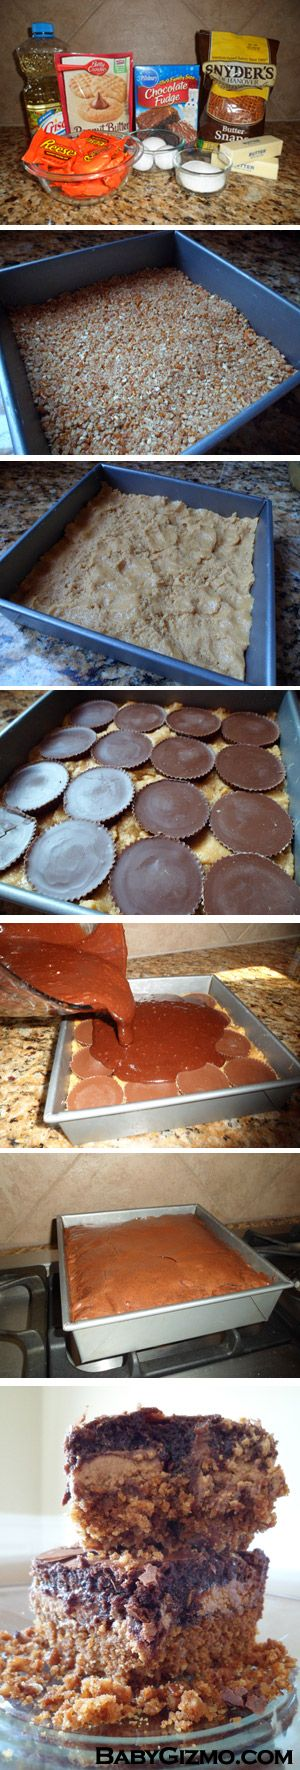 Pretzel Crusted-Peanut Butter Cookie/Candy-Brownie bars.